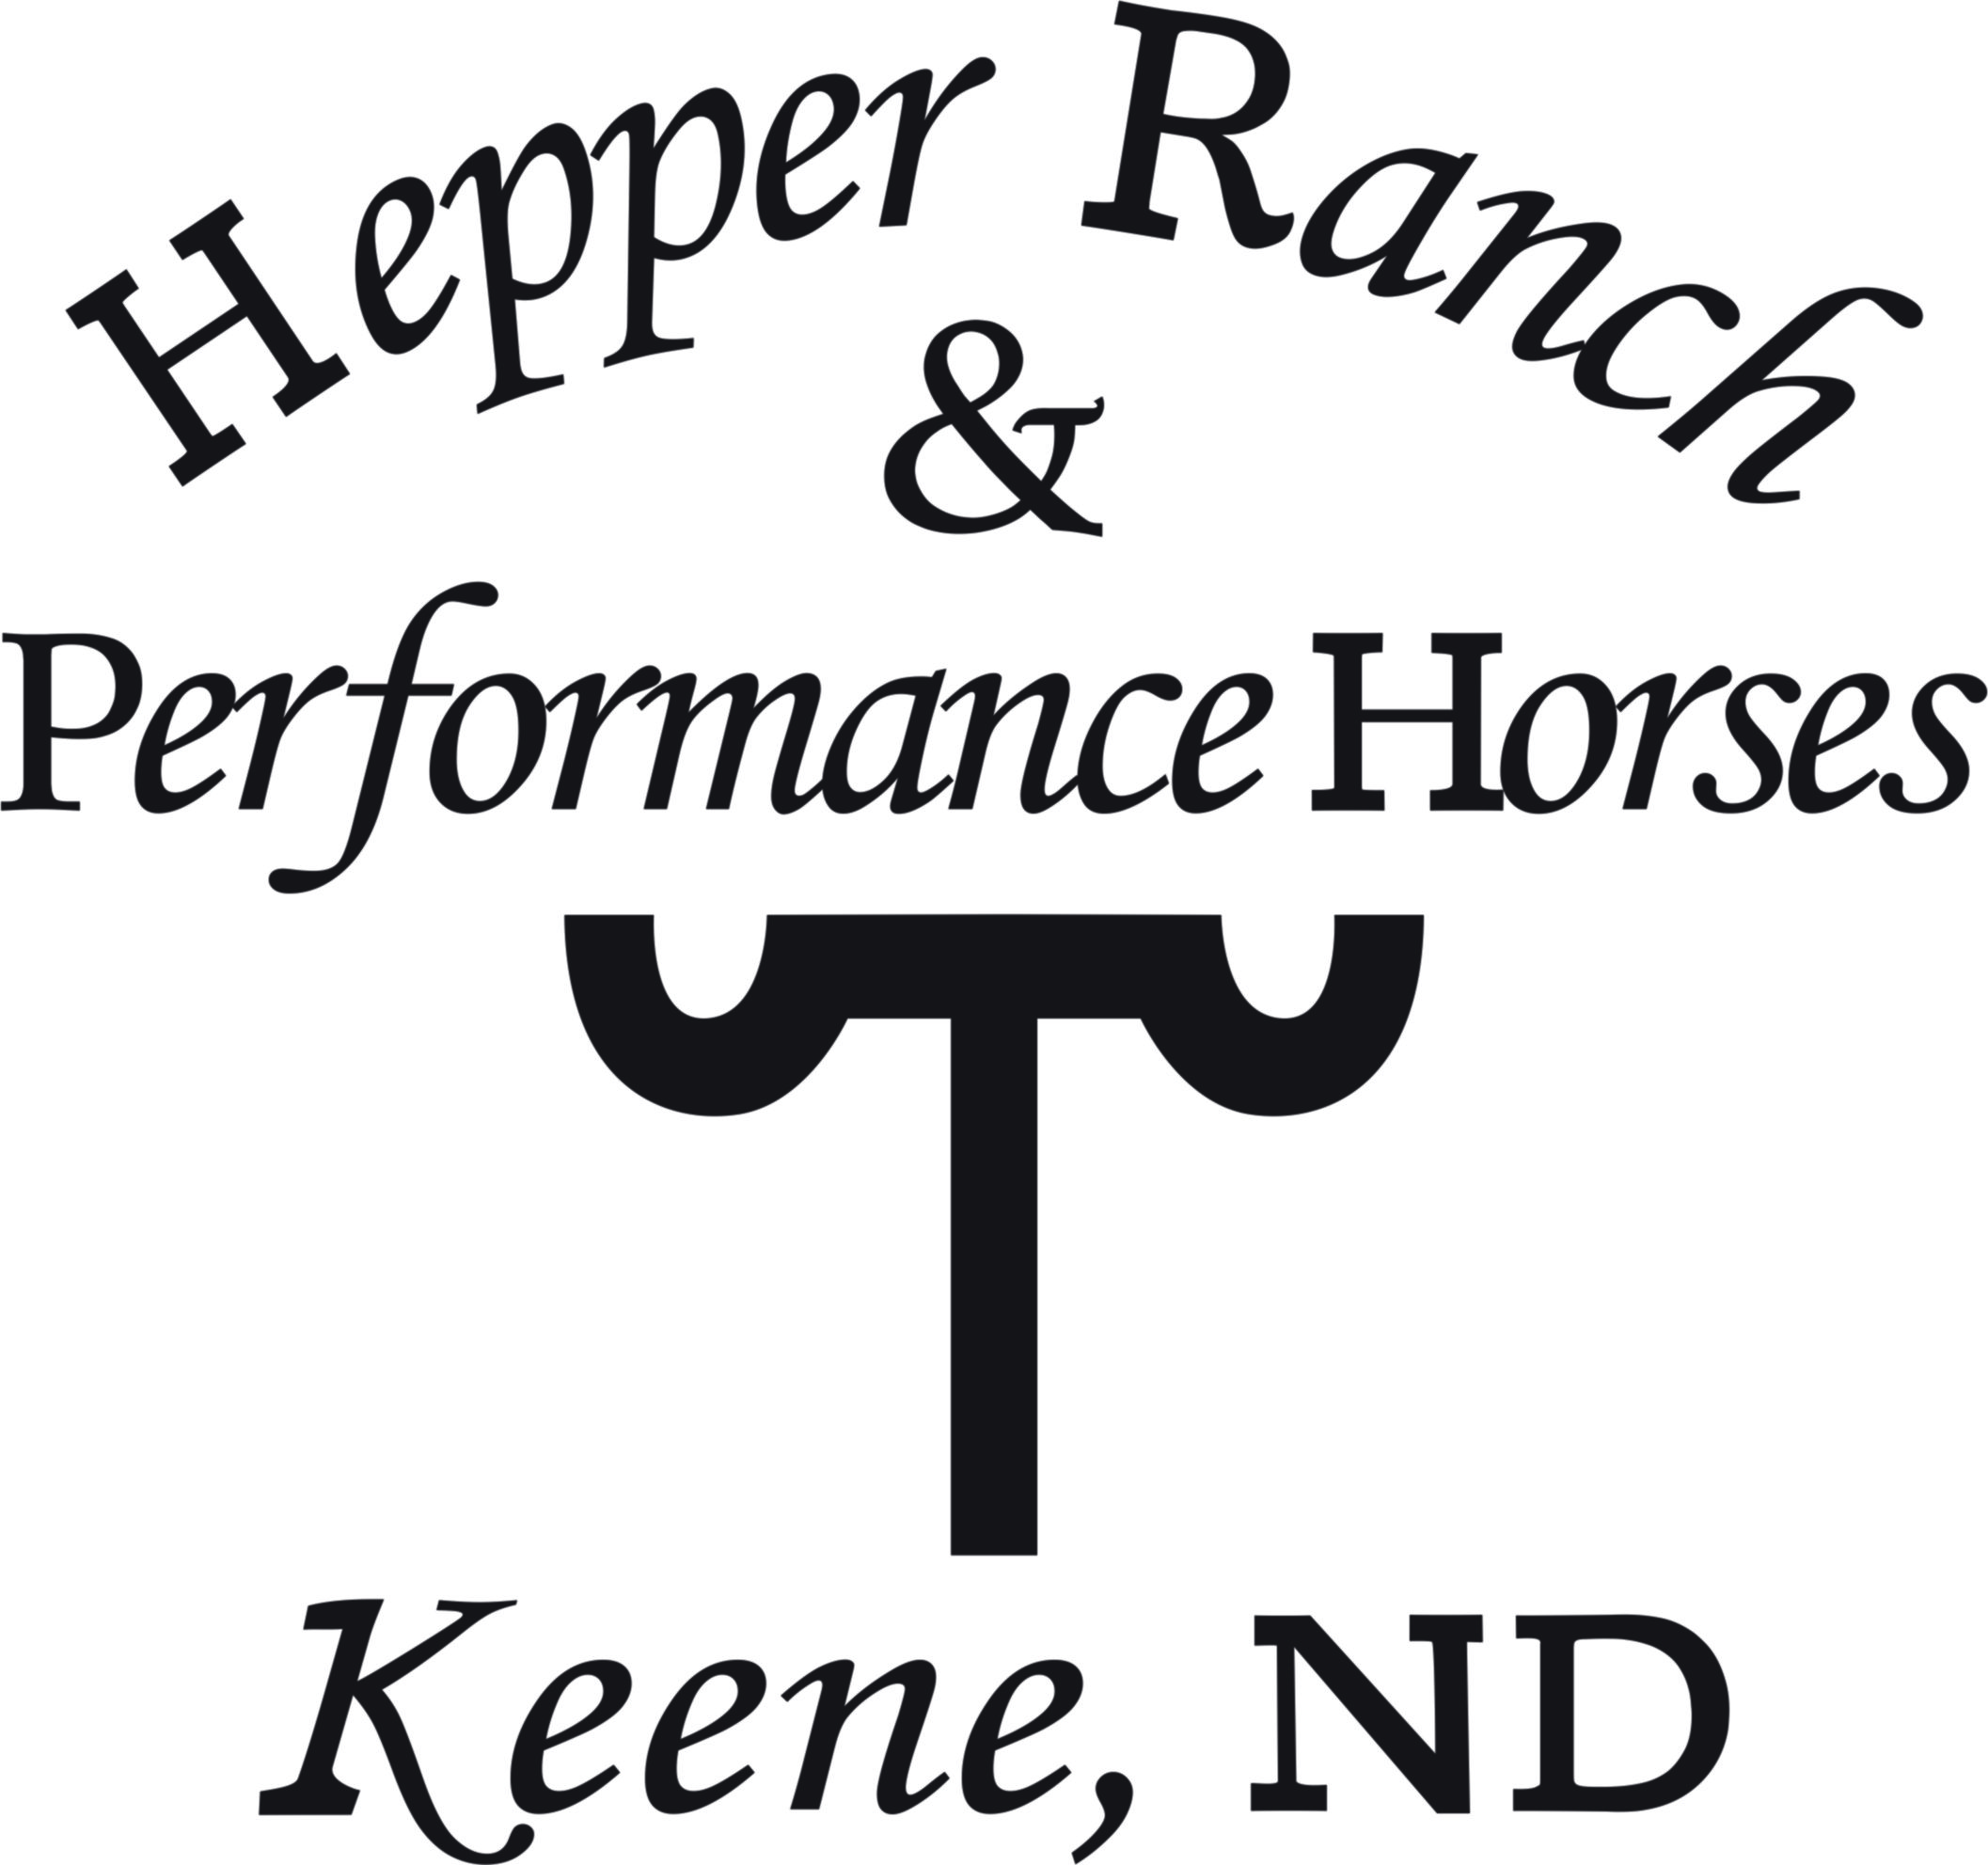 Hepper Ranch & Performance Horses - Jeff & Eva Hepper